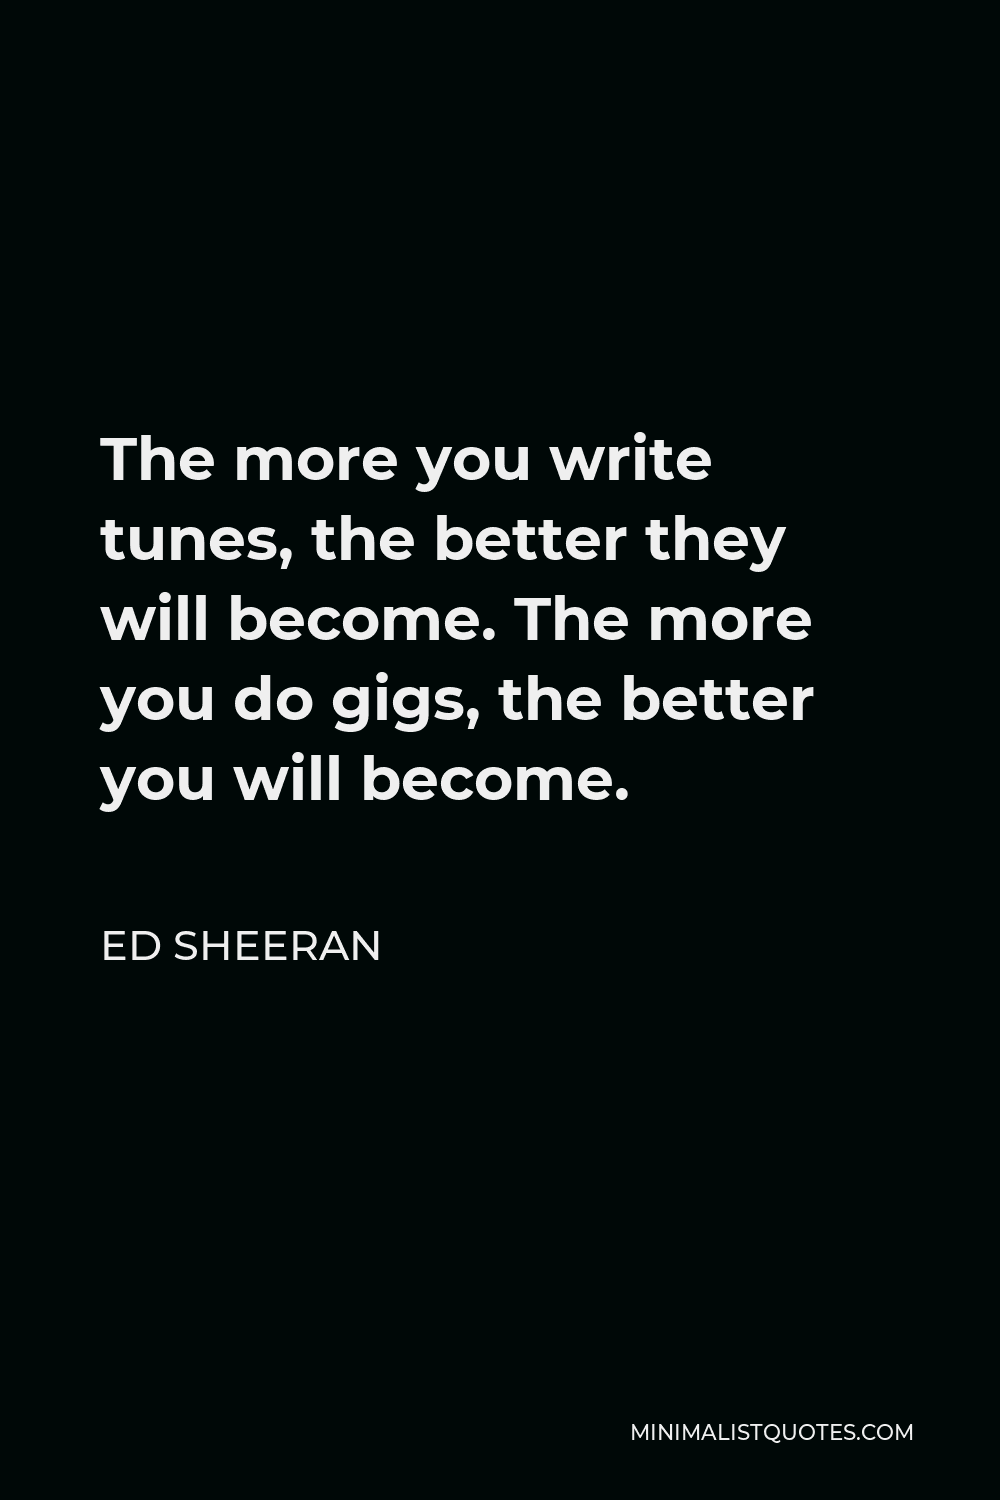 Ed Sheeran Quote - The more you write tunes, the better they will become. The more you do gigs, the better you will become.